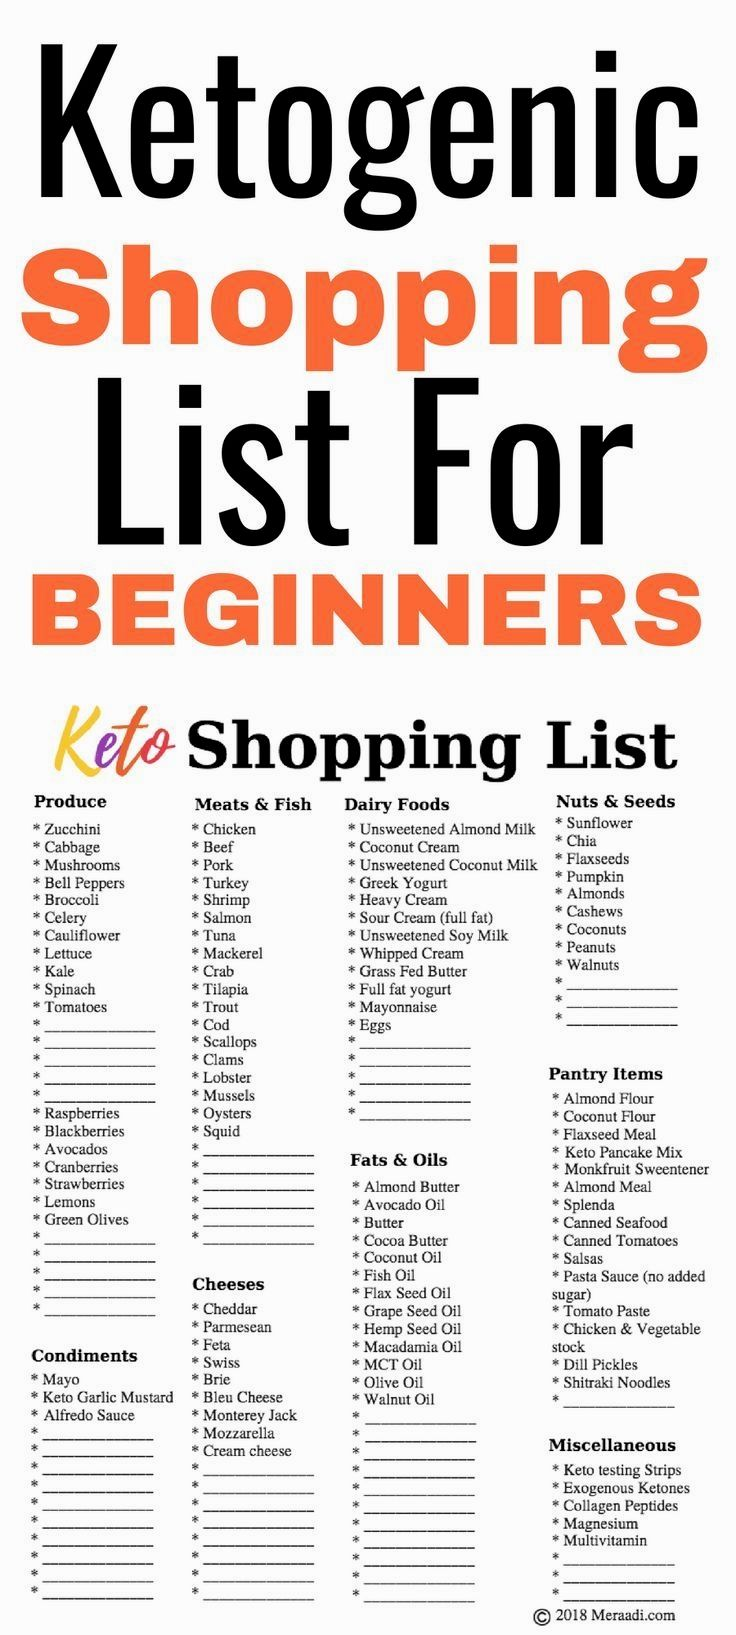 This Ketogenic Shopping List For Beginners Lists Everything You